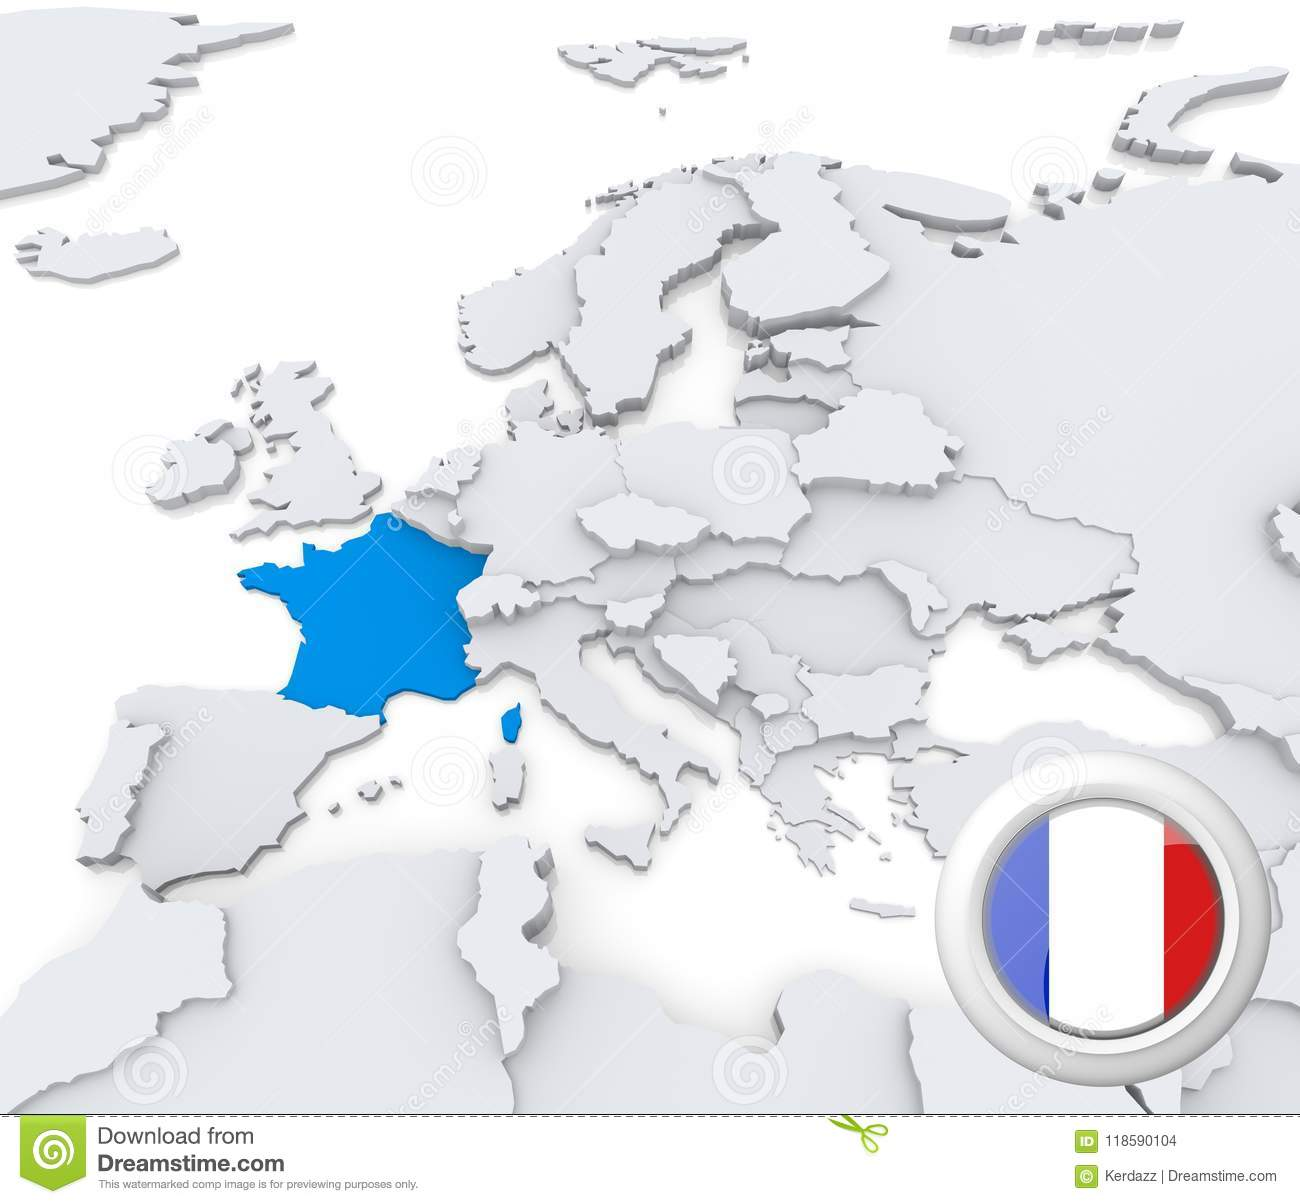 Map Of Europe France.France On Map Of Europe Stock Illustration Illustration Of